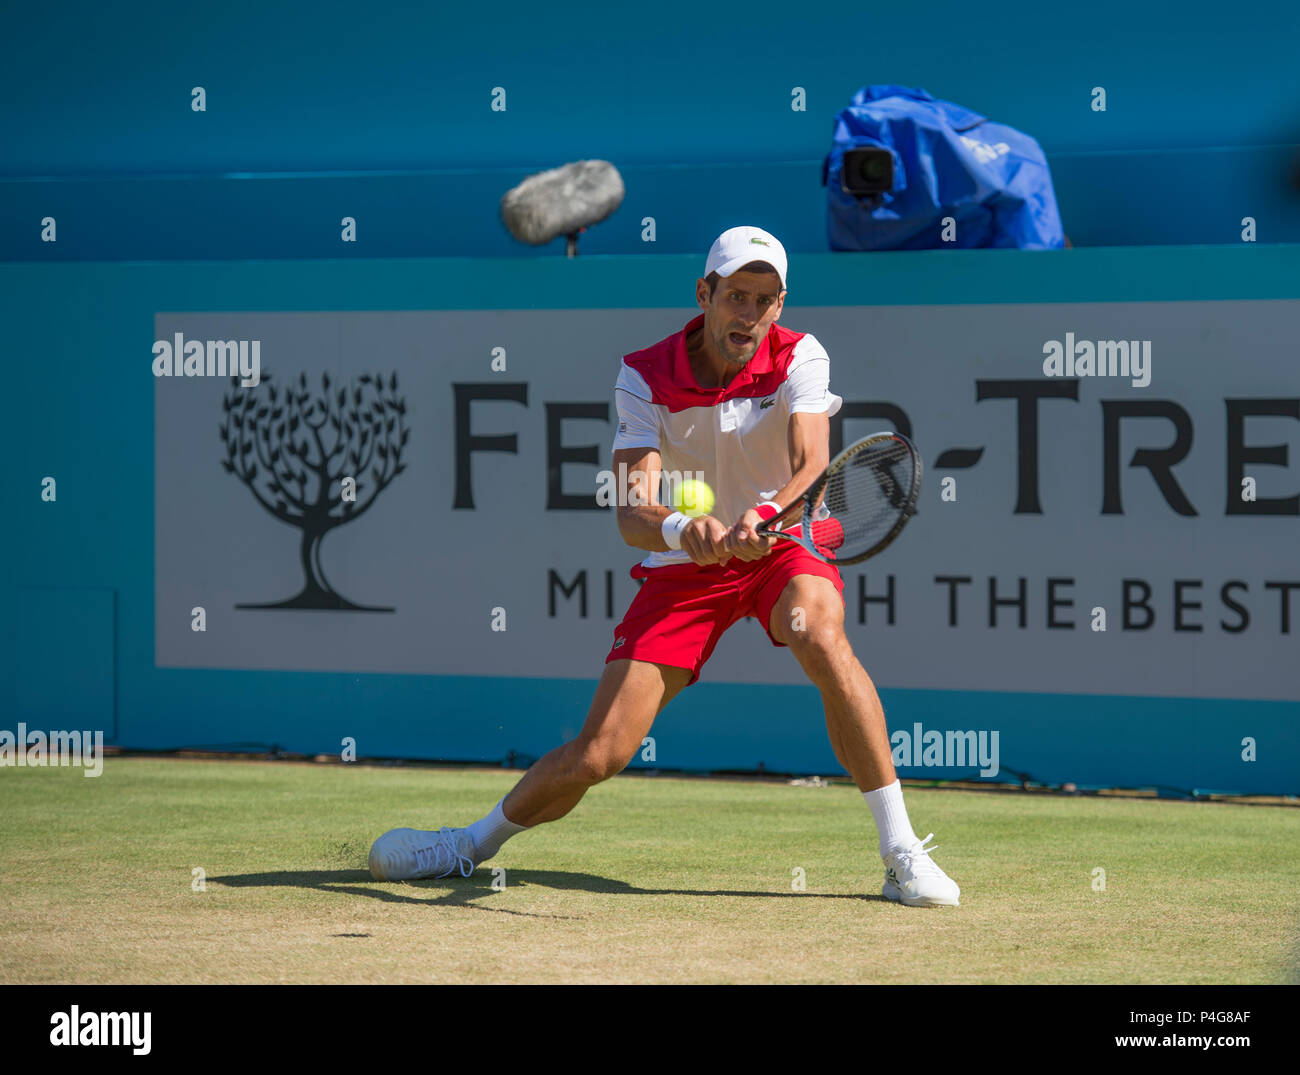 The Queen's Club, London, UK. 22 June, 2018. Day 5 quarter-final match on centre court with Adrian Mannarino (FRA) vs Novak Djokovic (SRB). Credit: Malcolm Park/Alamy Live News. - Stock Image